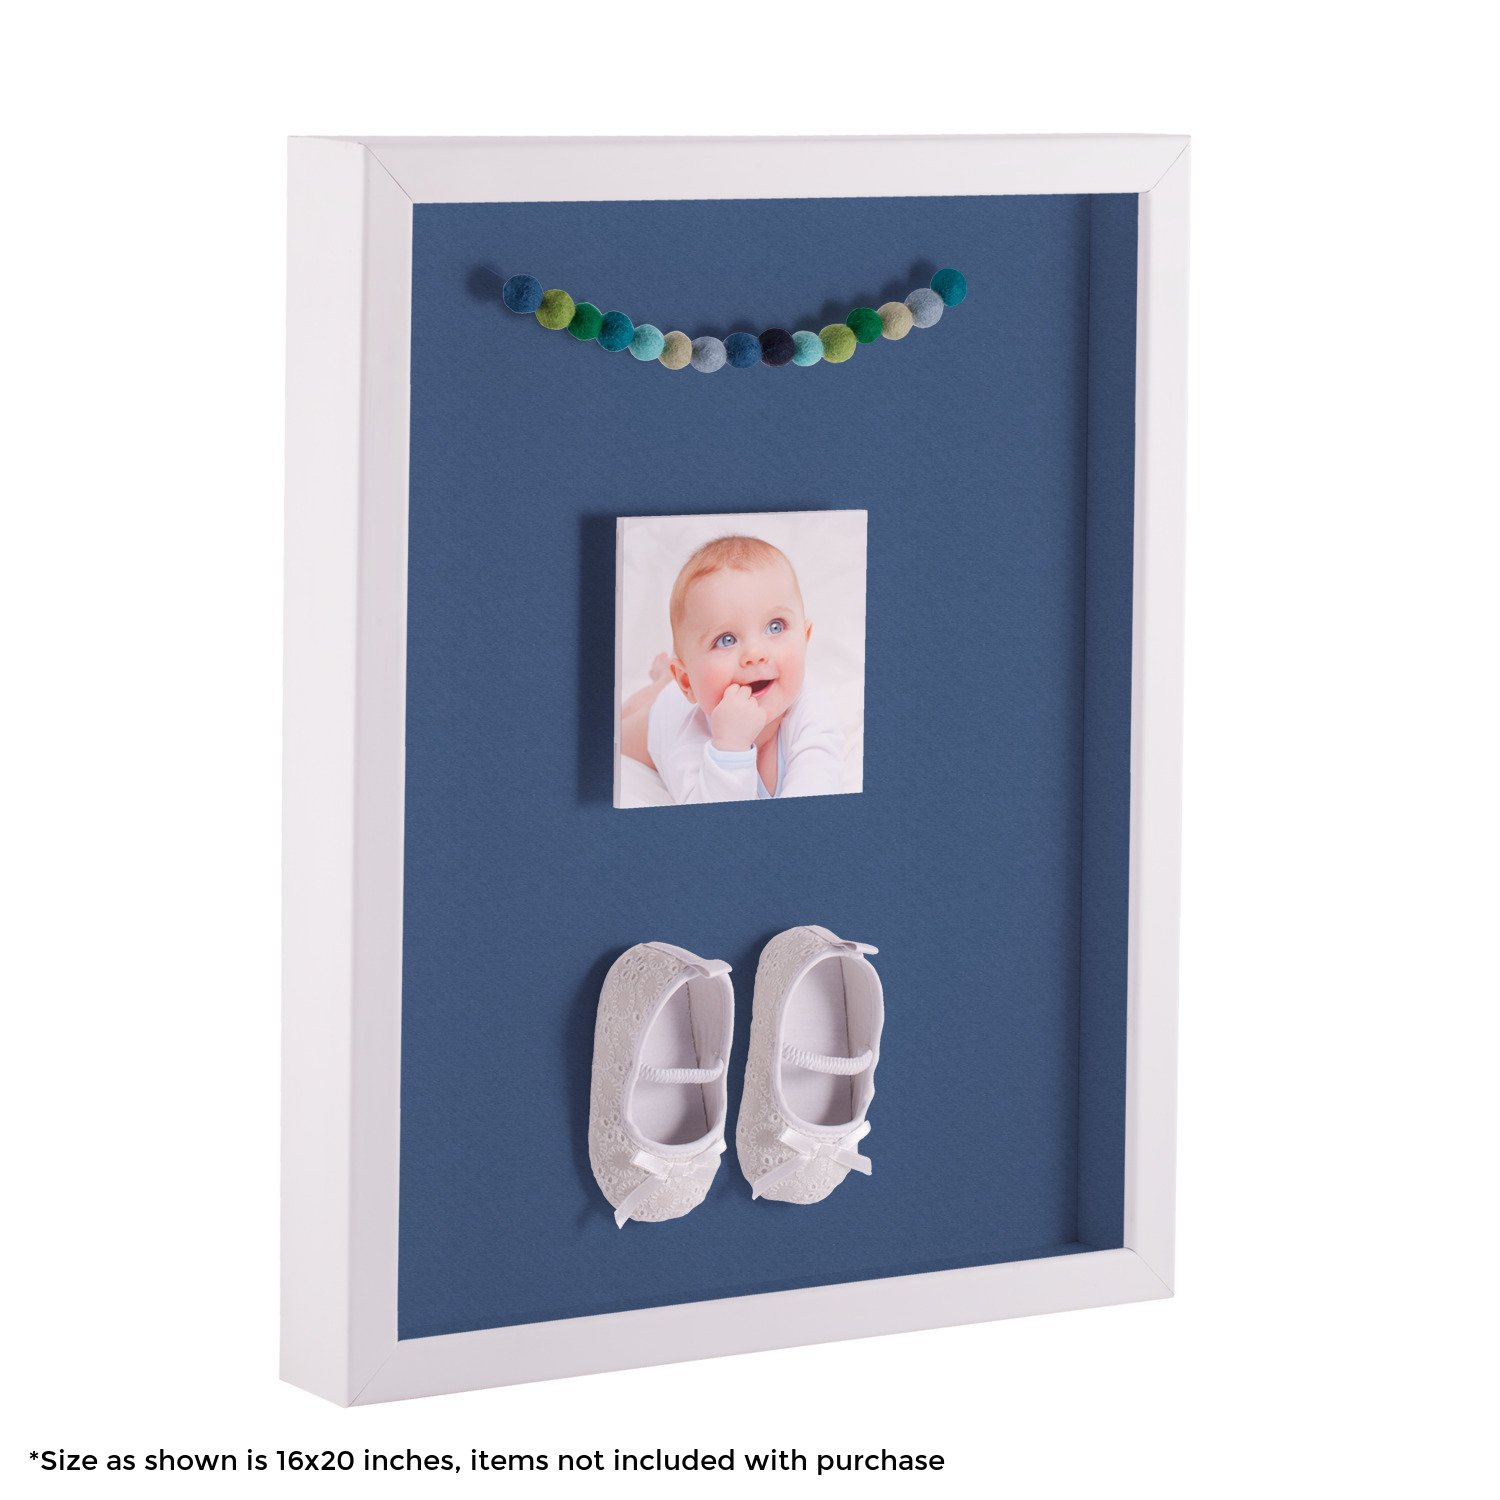 ArtToFrames 24 x 36 Inch Shadow Box Picture Frame, with a Satin White 1'' Shadowbox frame and Royal Mat